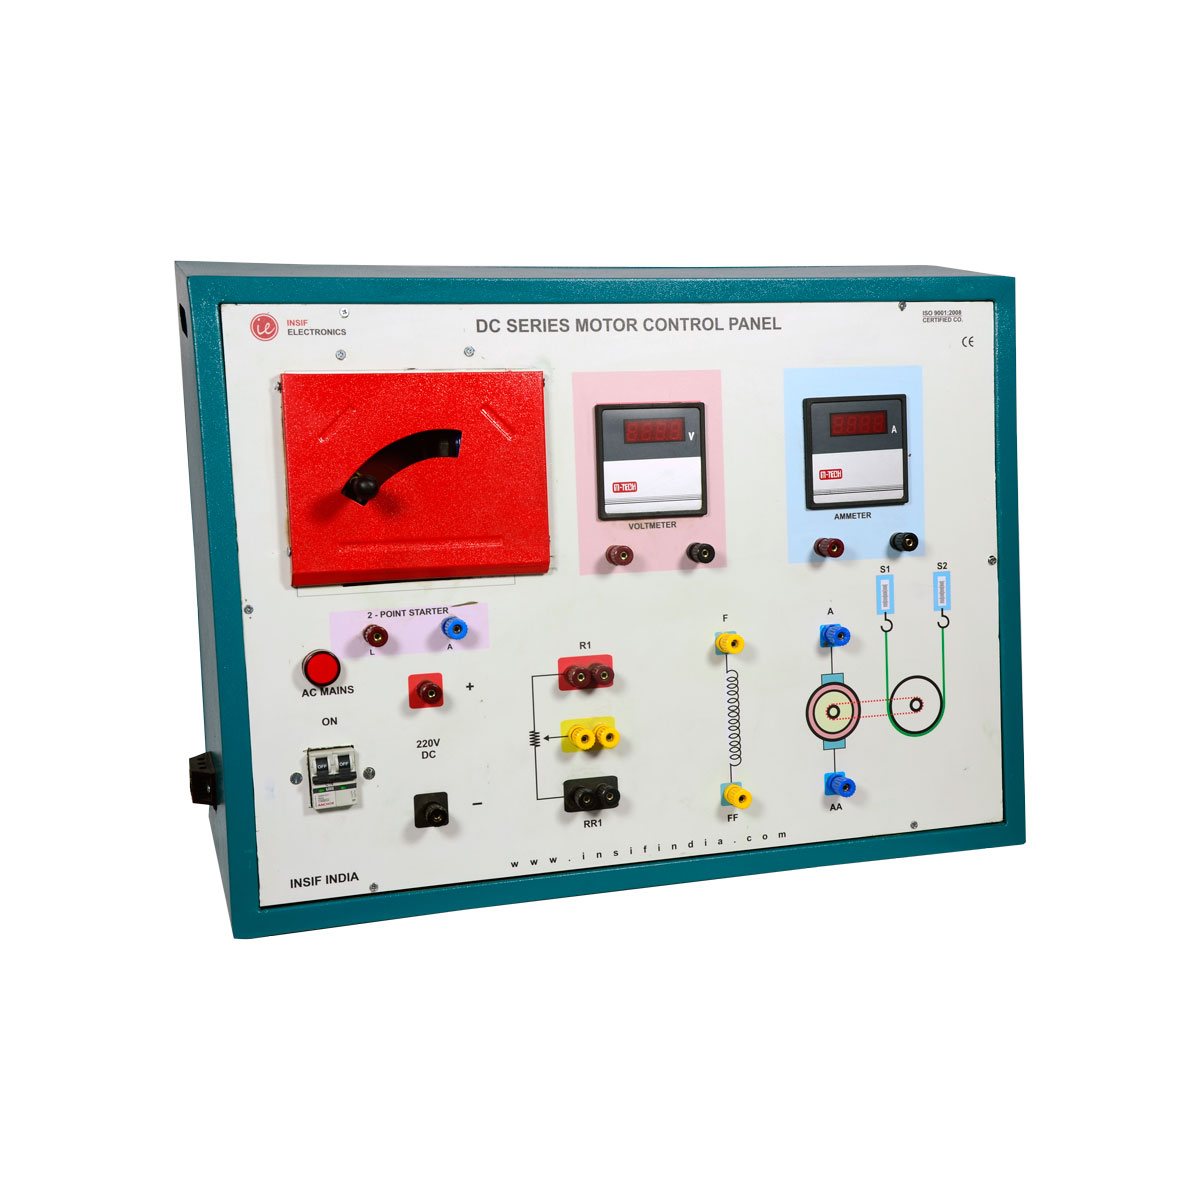 product/thumbnails/dc-series-motor-control-panel-1.jpg